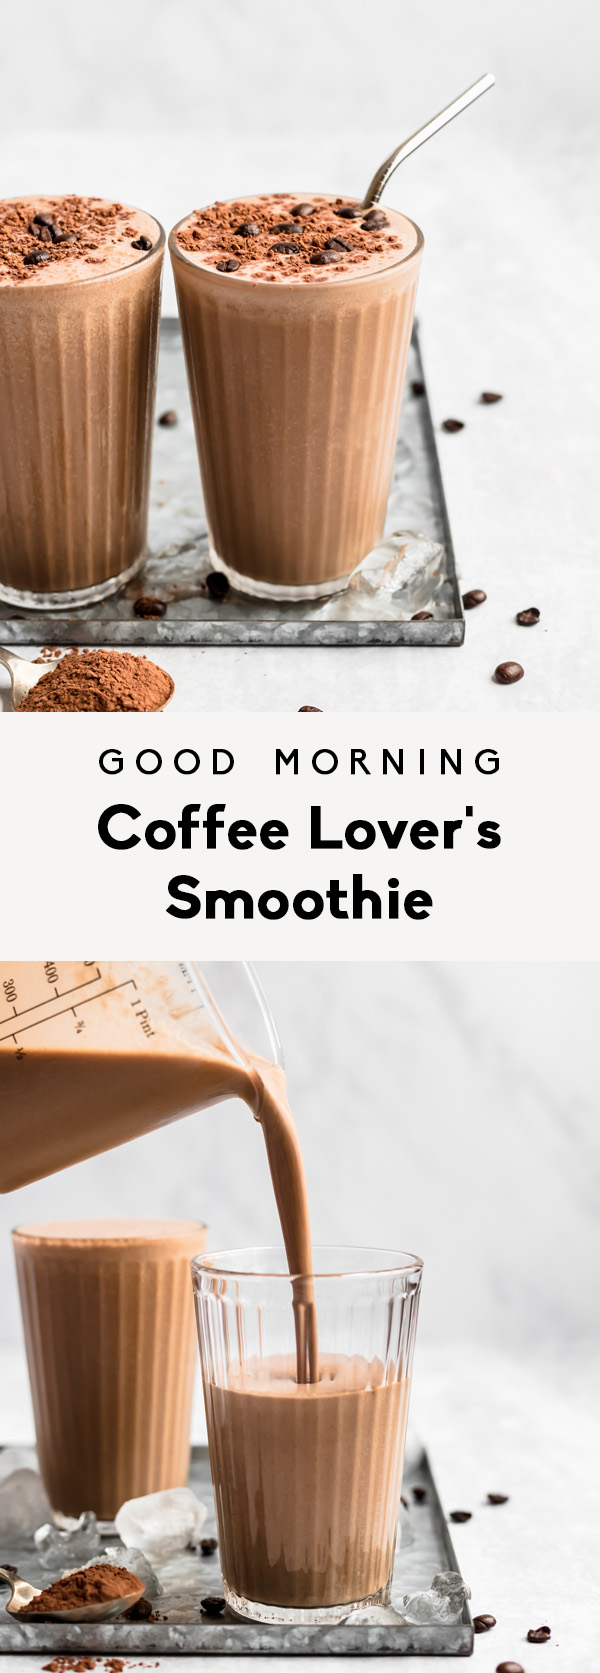 collage of a coffee smoothie with text overlay